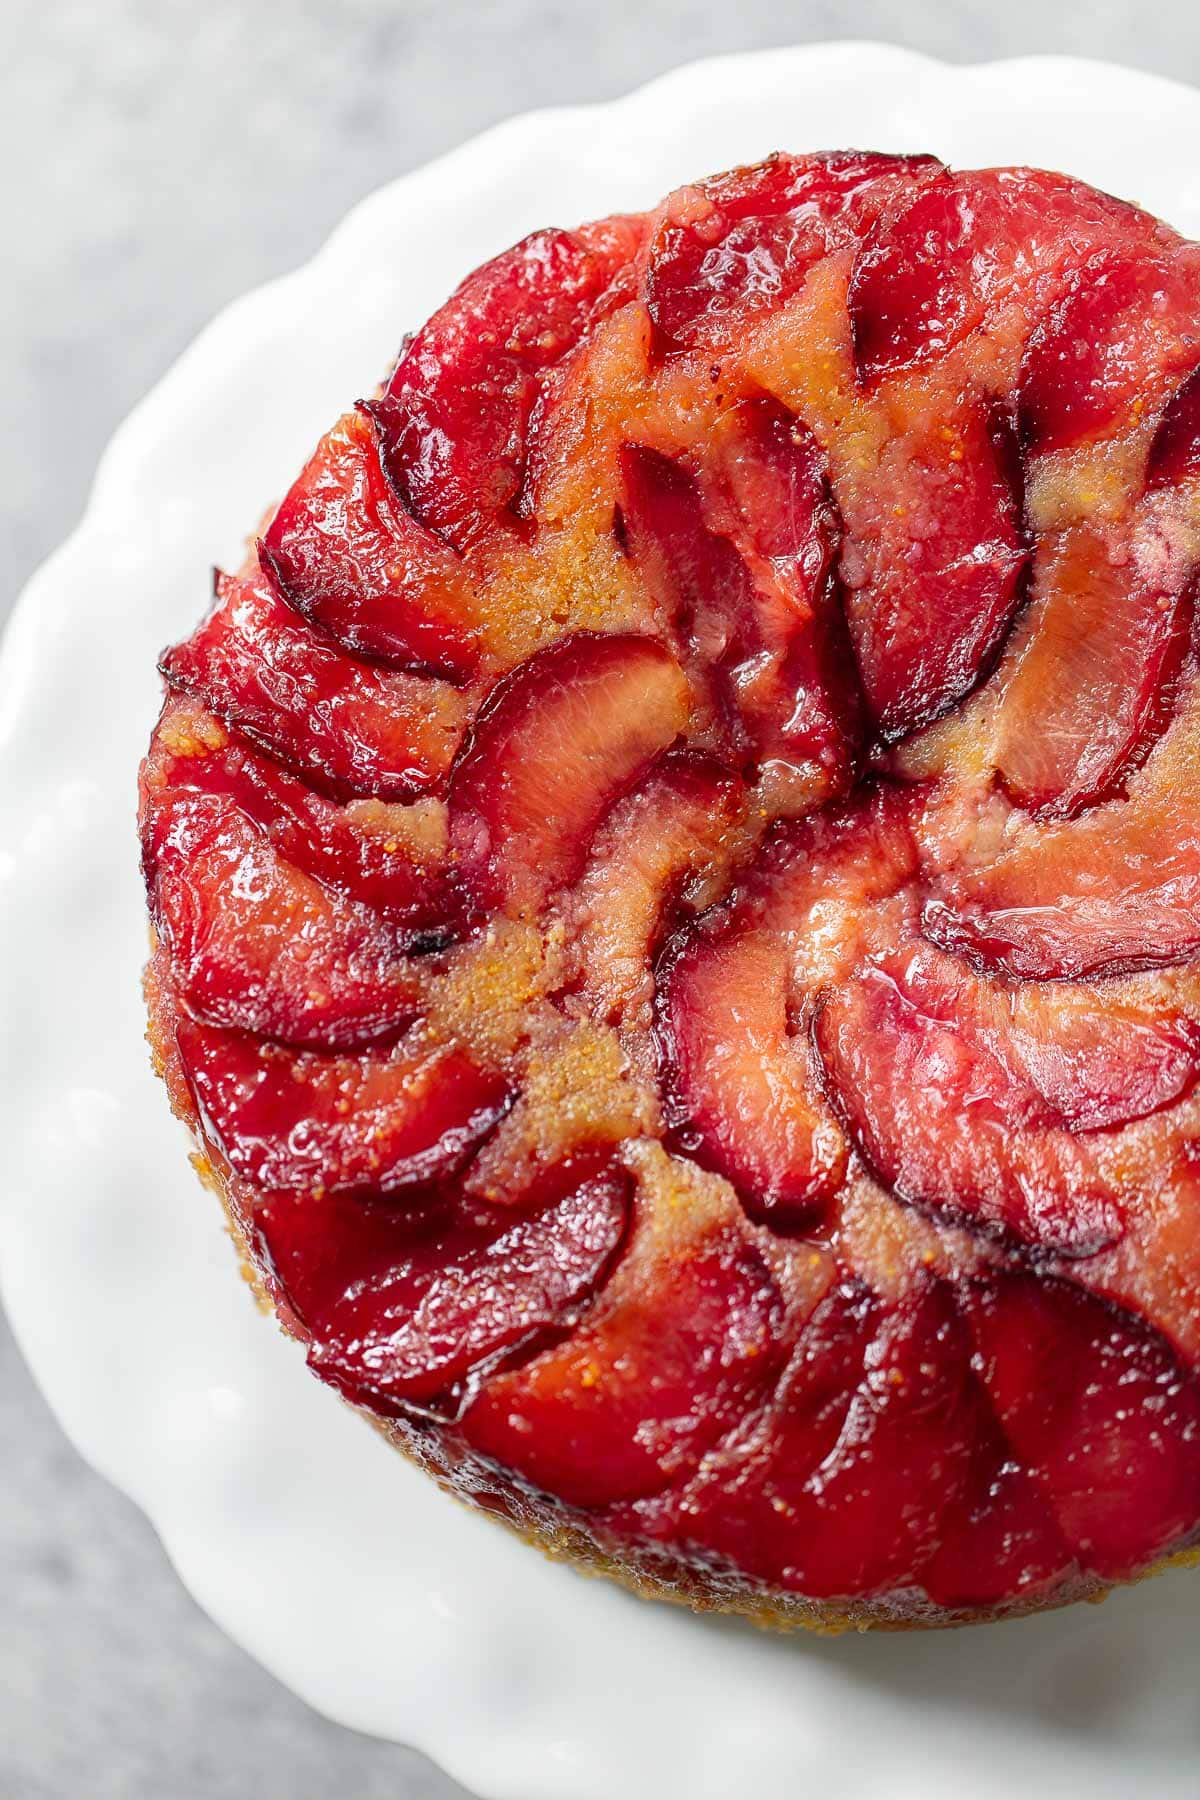 Sliced wedges of upside down plum cake with sticky sauce on a white cake stand.